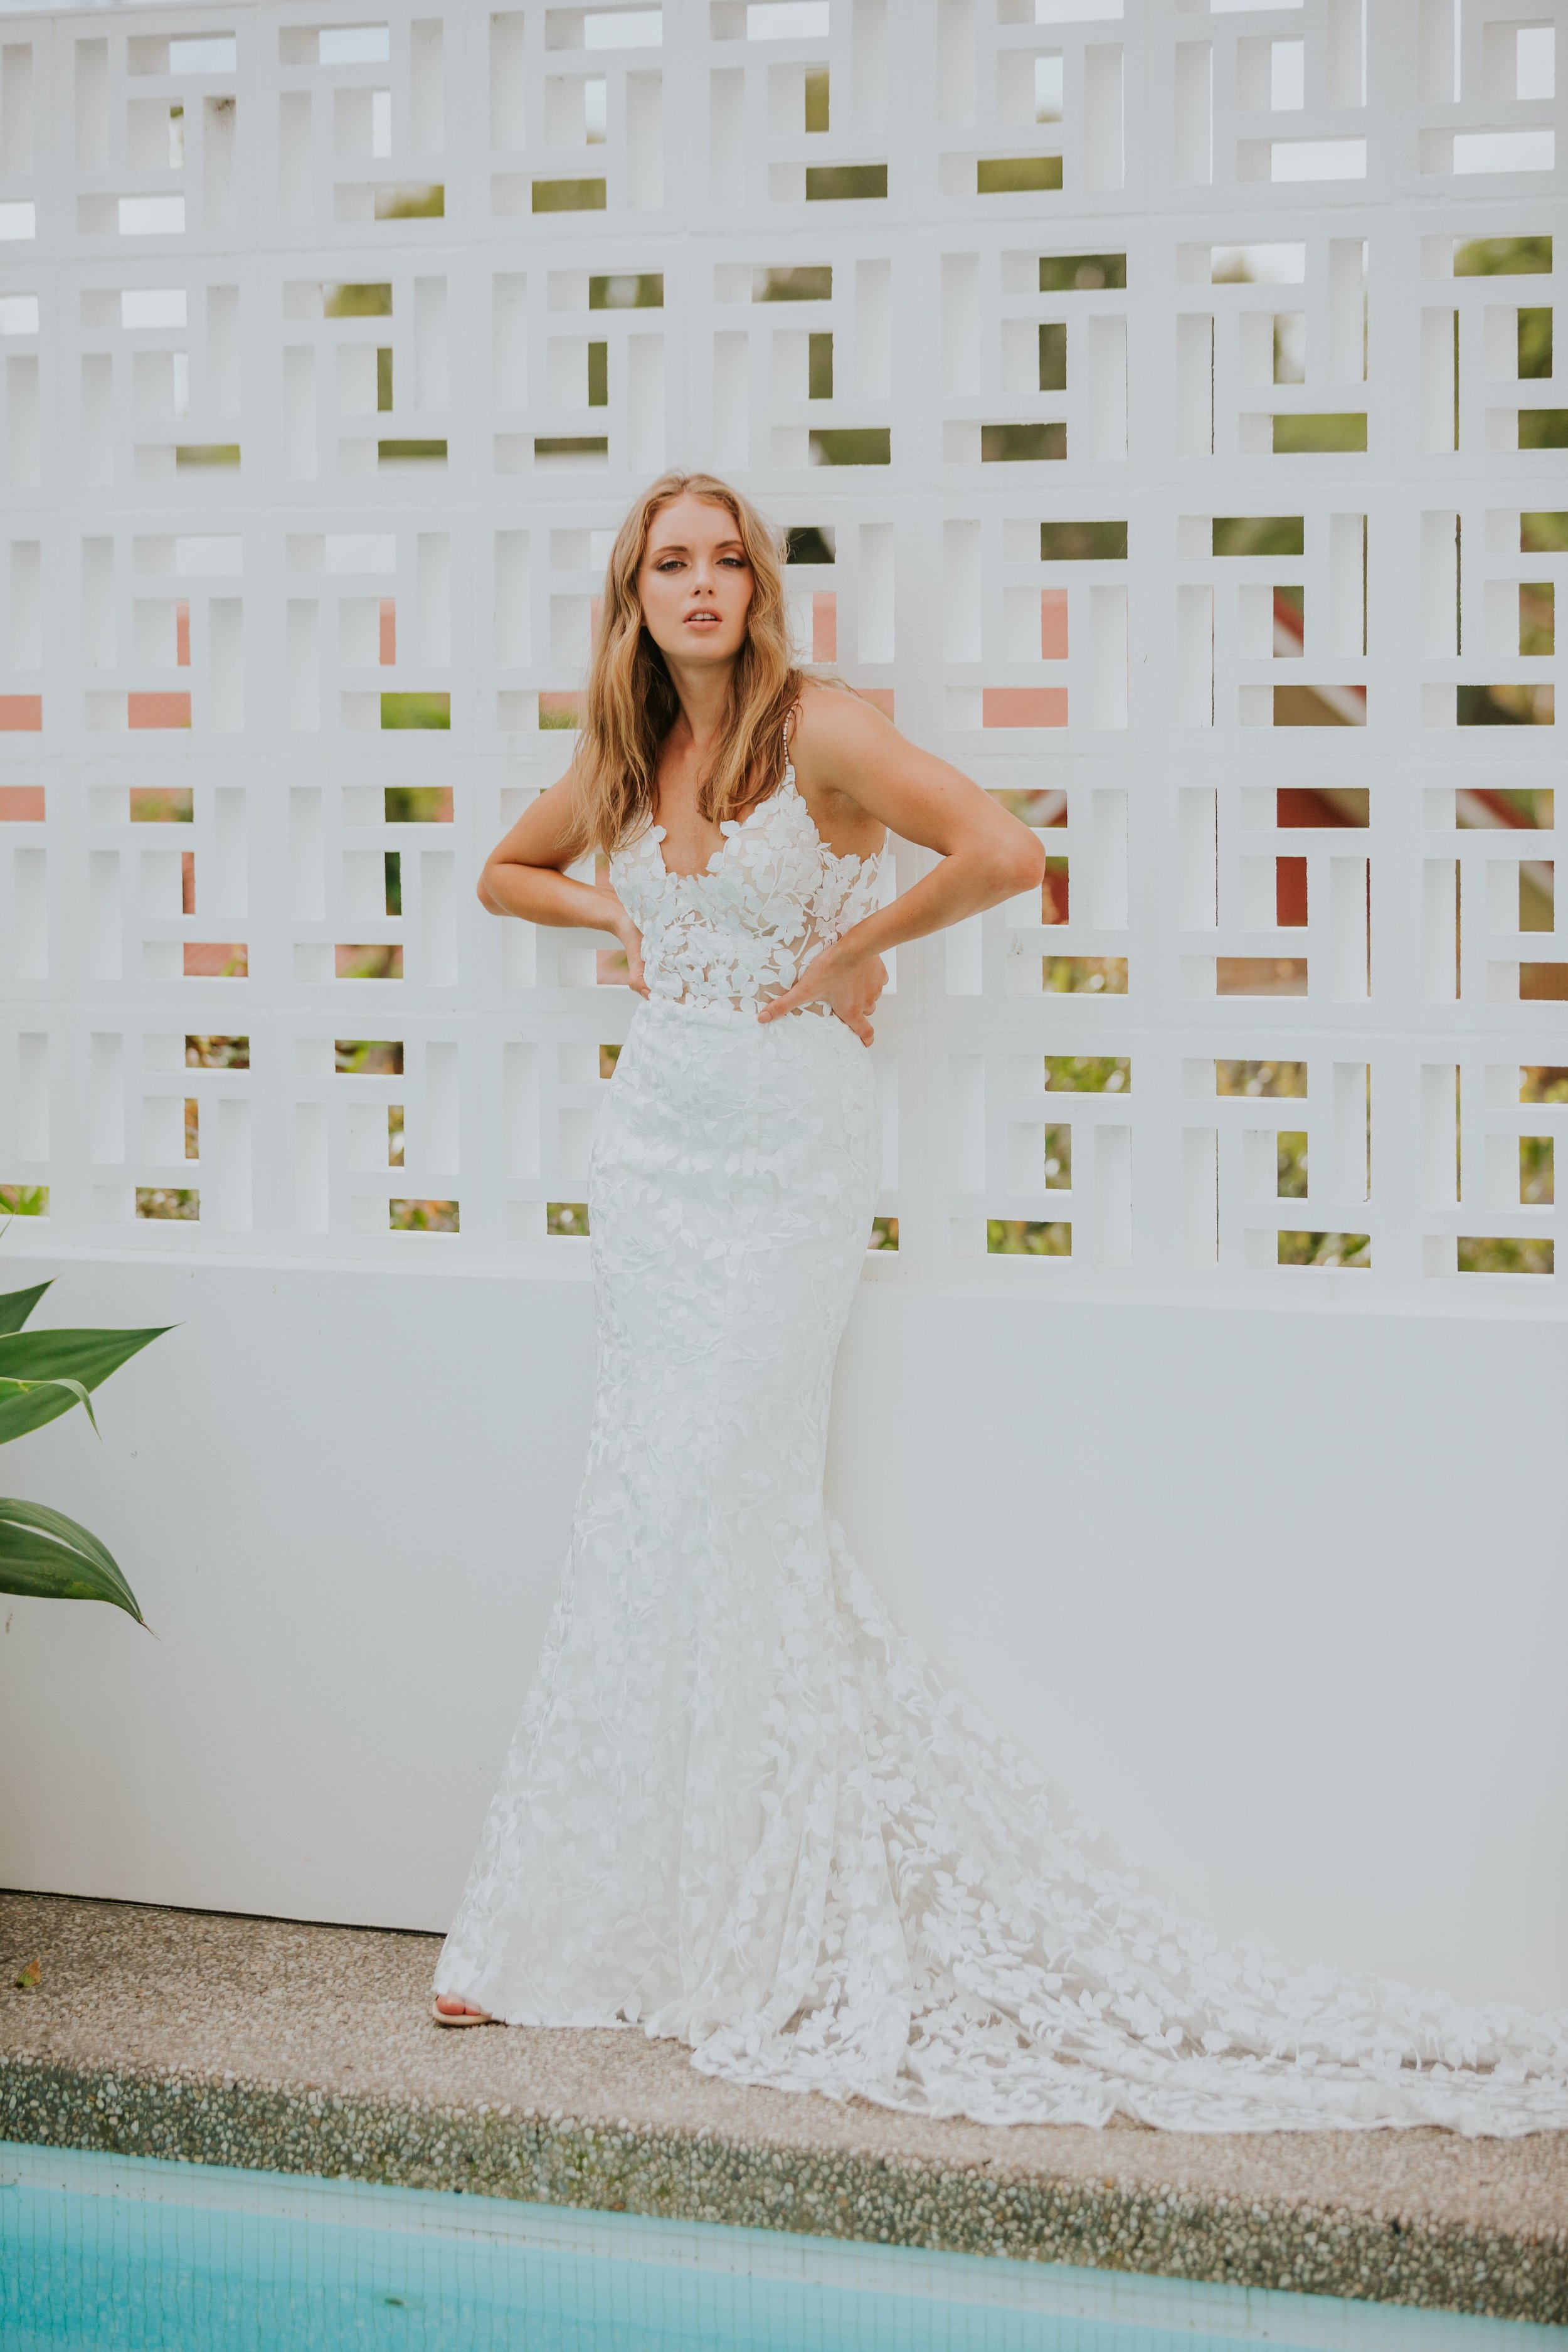 Our BALI gown is the dress you put on and never want to take off again. Made cool, luxe bride using our exclusive ivory floral textured lace. Her heart-stopping detail is in the crystal embellished spaghetti straps that span over the shoulders and down a revealing open back.